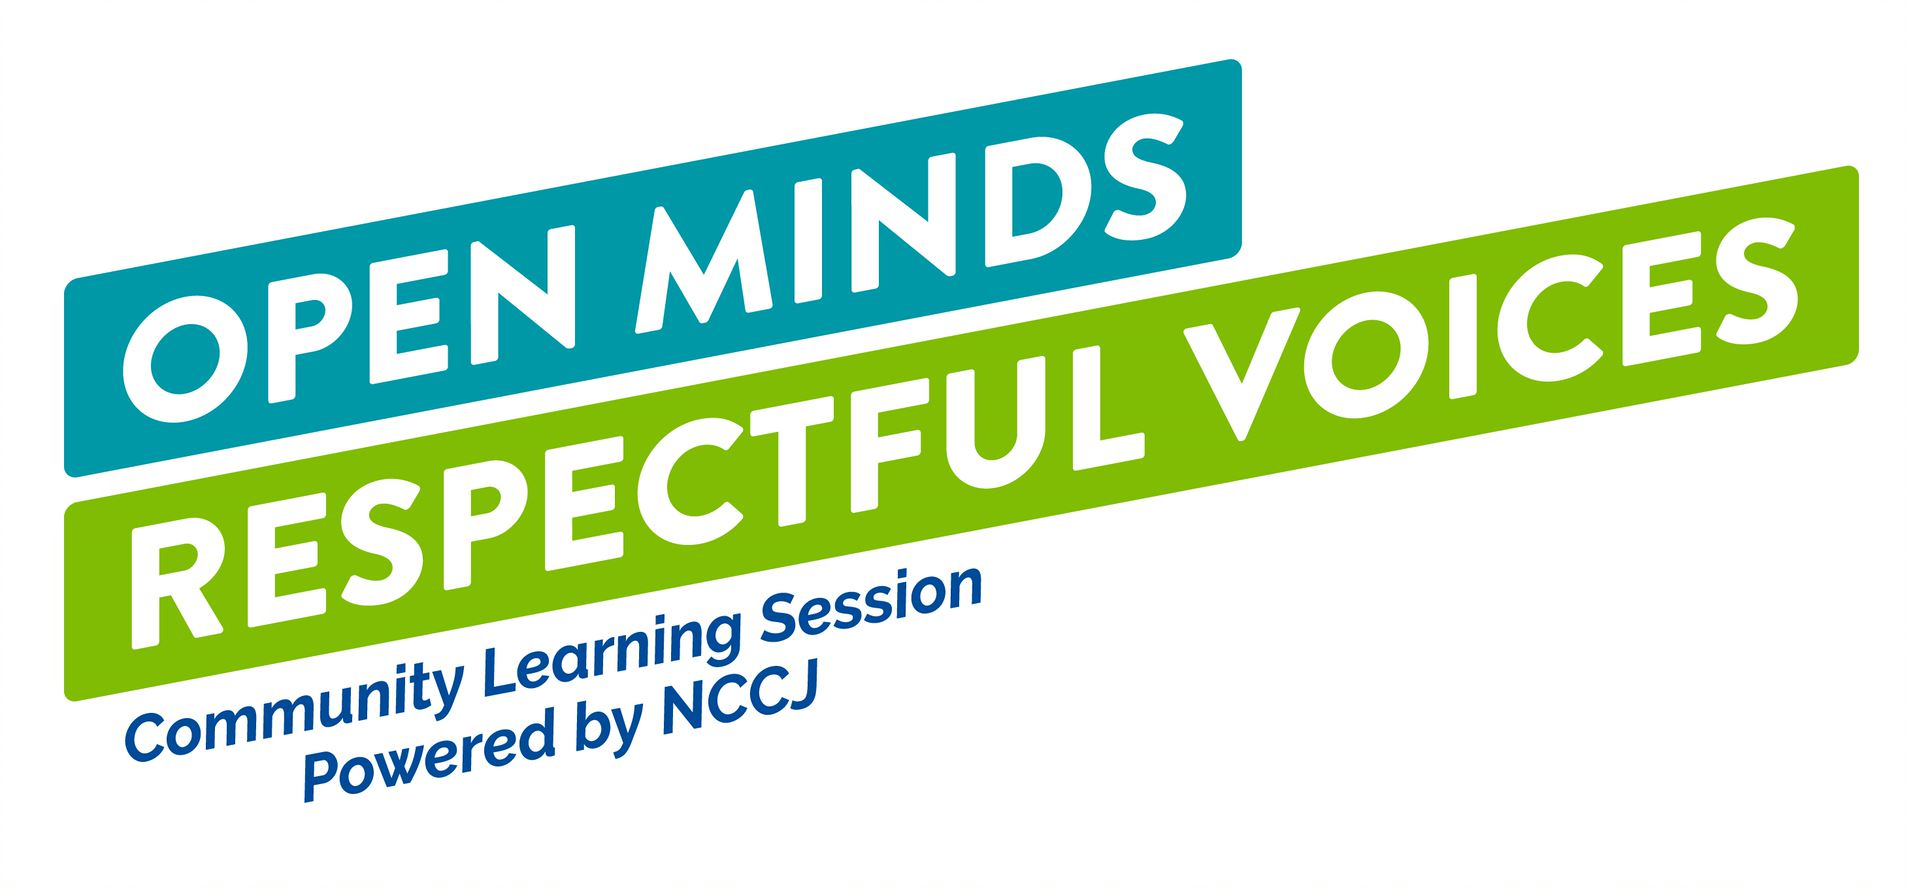 NCCJ Open Minds, Respectful Voices-Community Learning Session